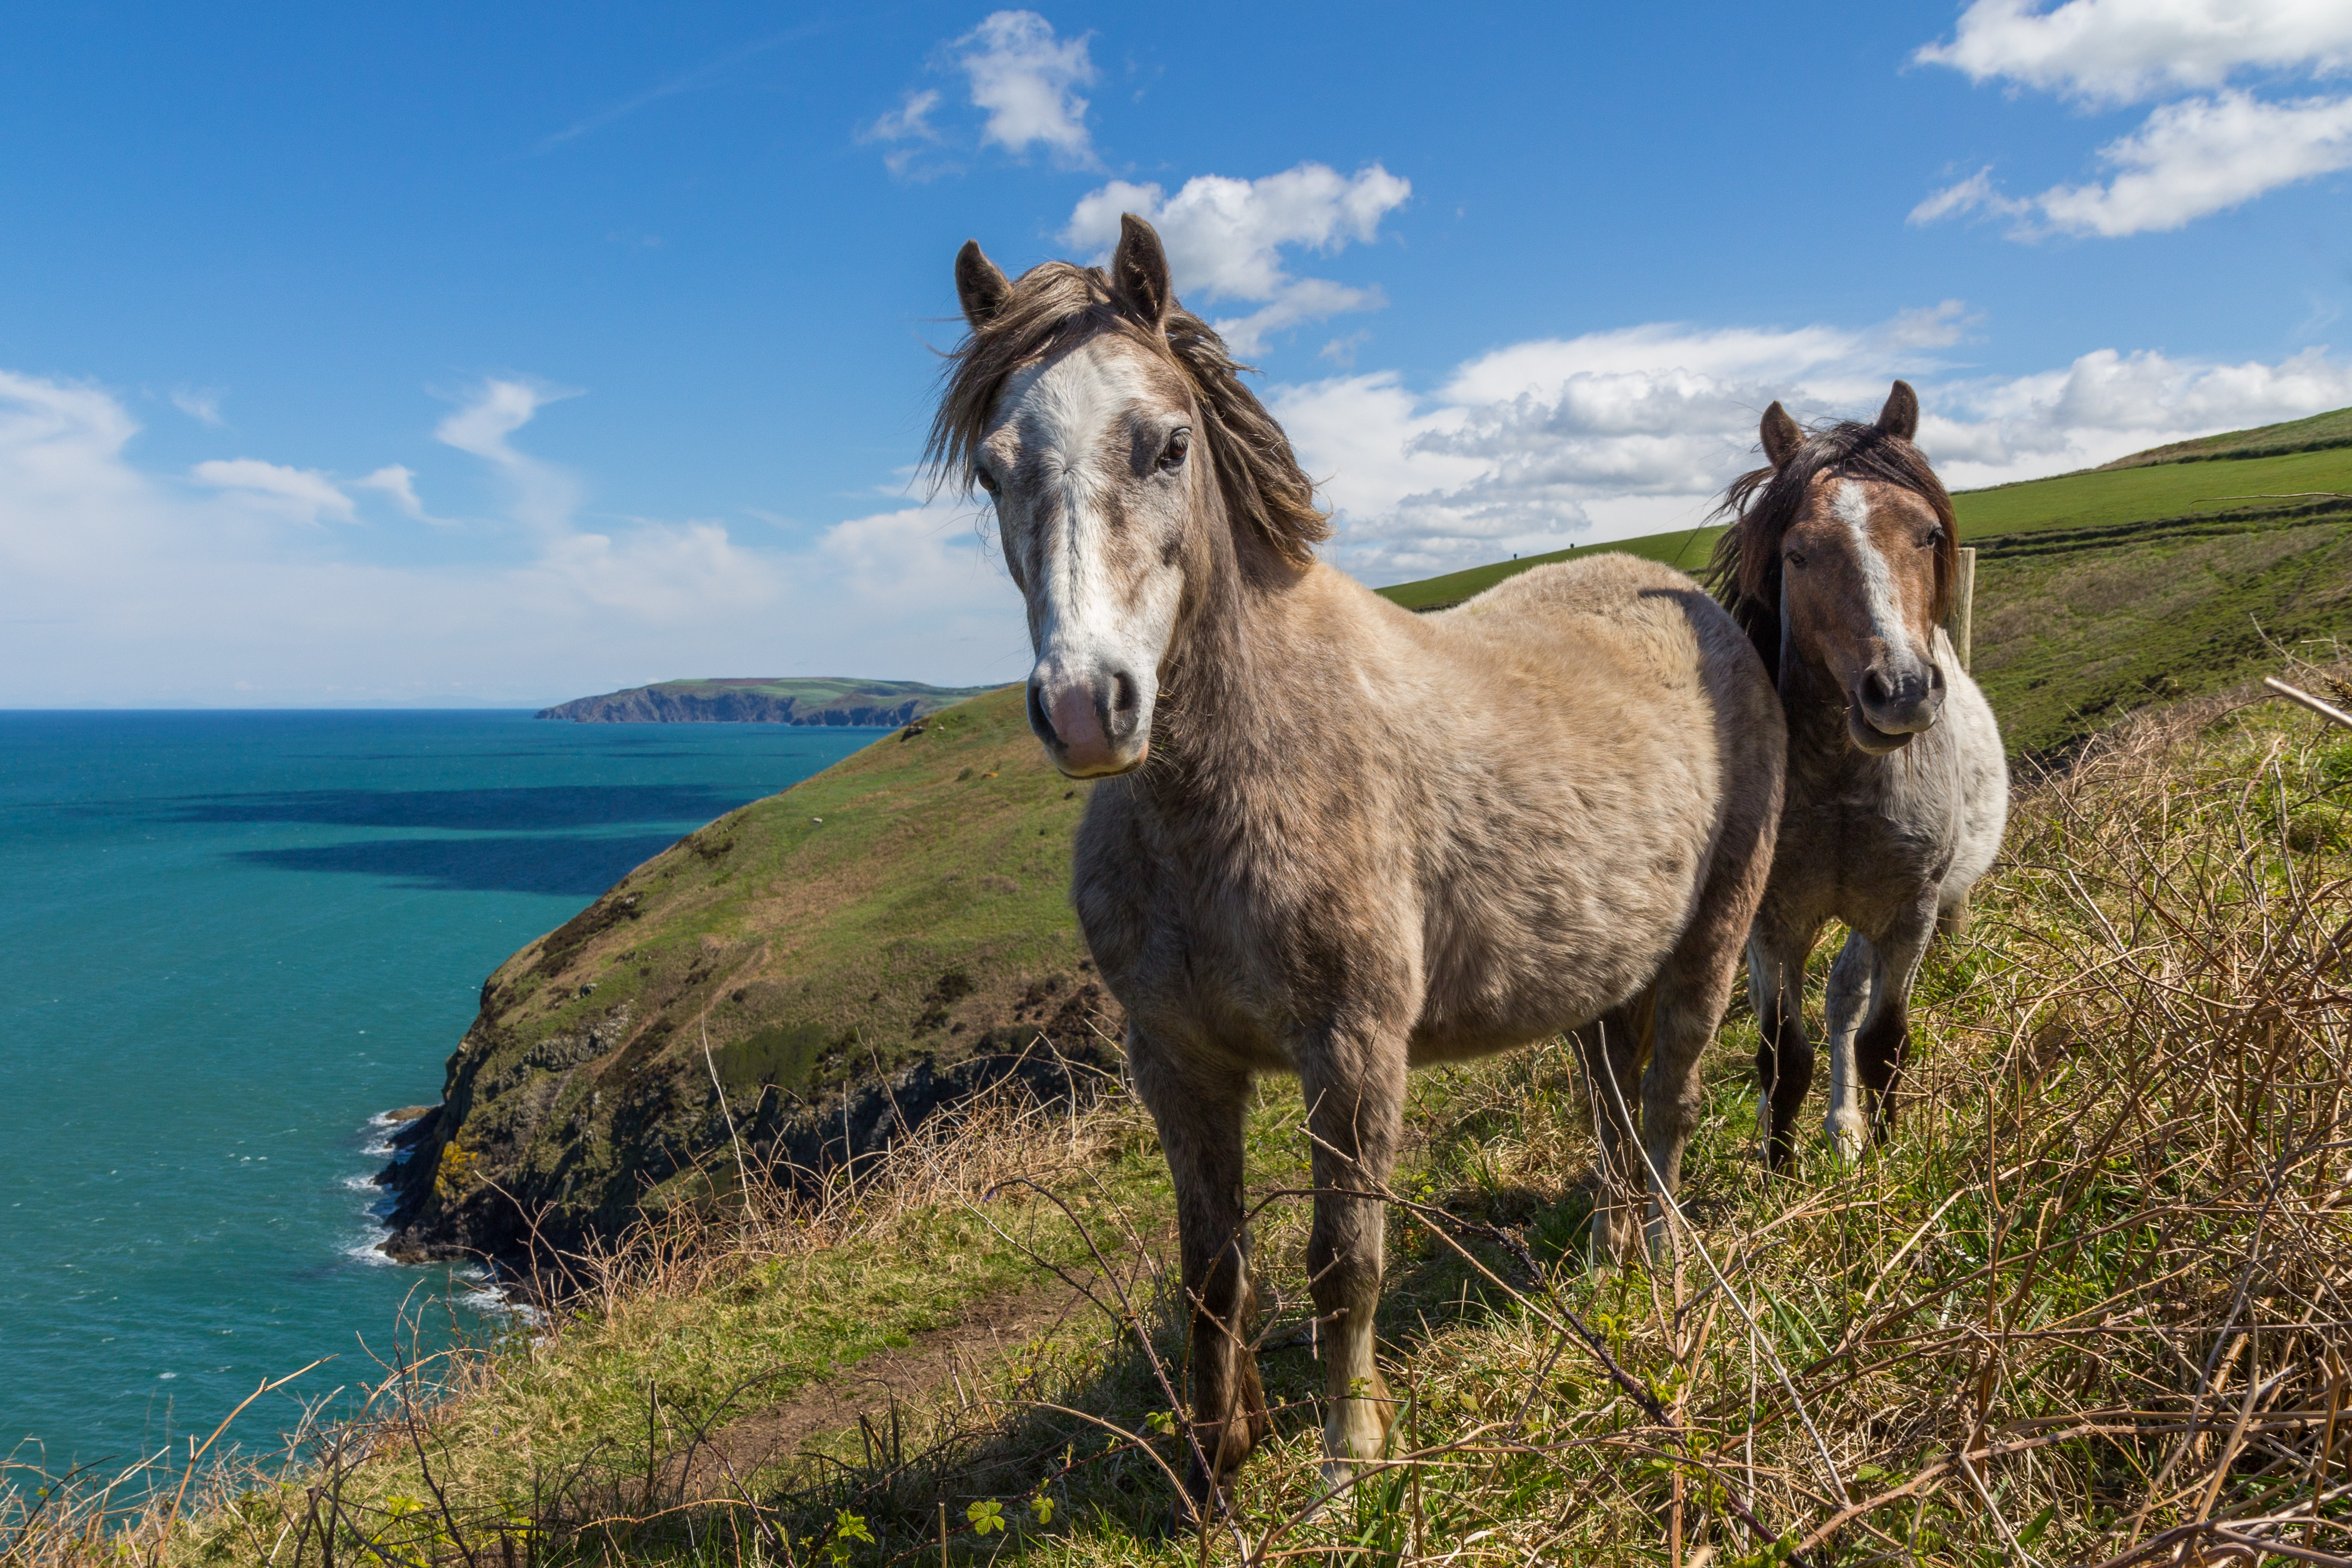 Two ponies standing close to each other on a slope overlooking azure sea